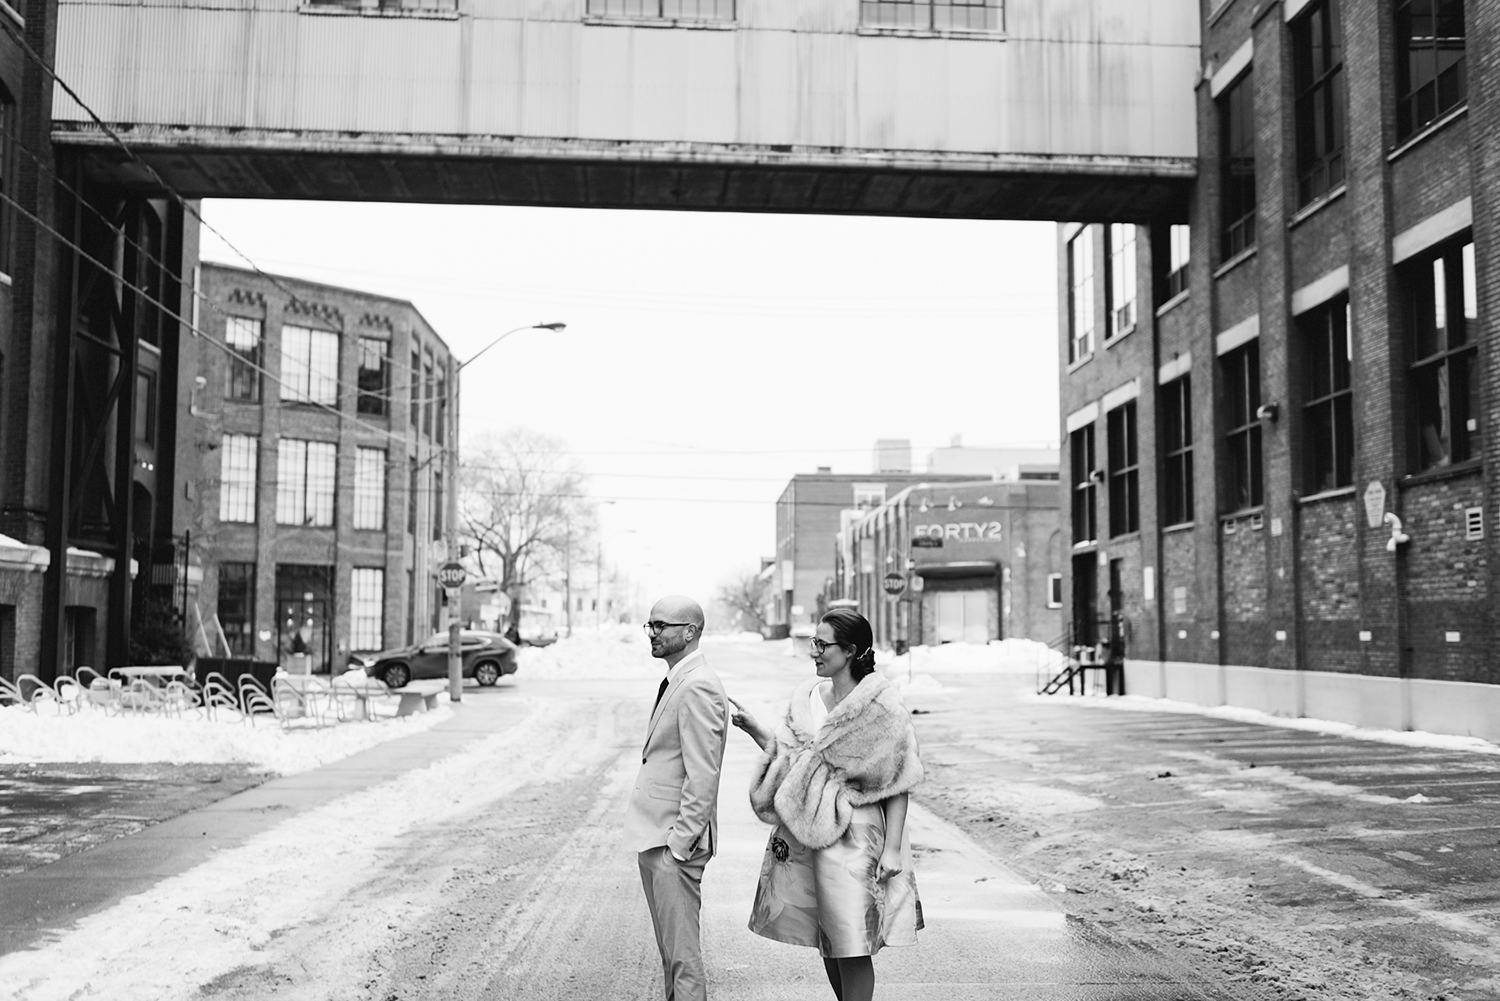 5-first-look-liberty-village-real-wedding-toronto-wedding-photographer-analog-film-candid-documentary-moments-old-toronto-emotional-bw.jpg